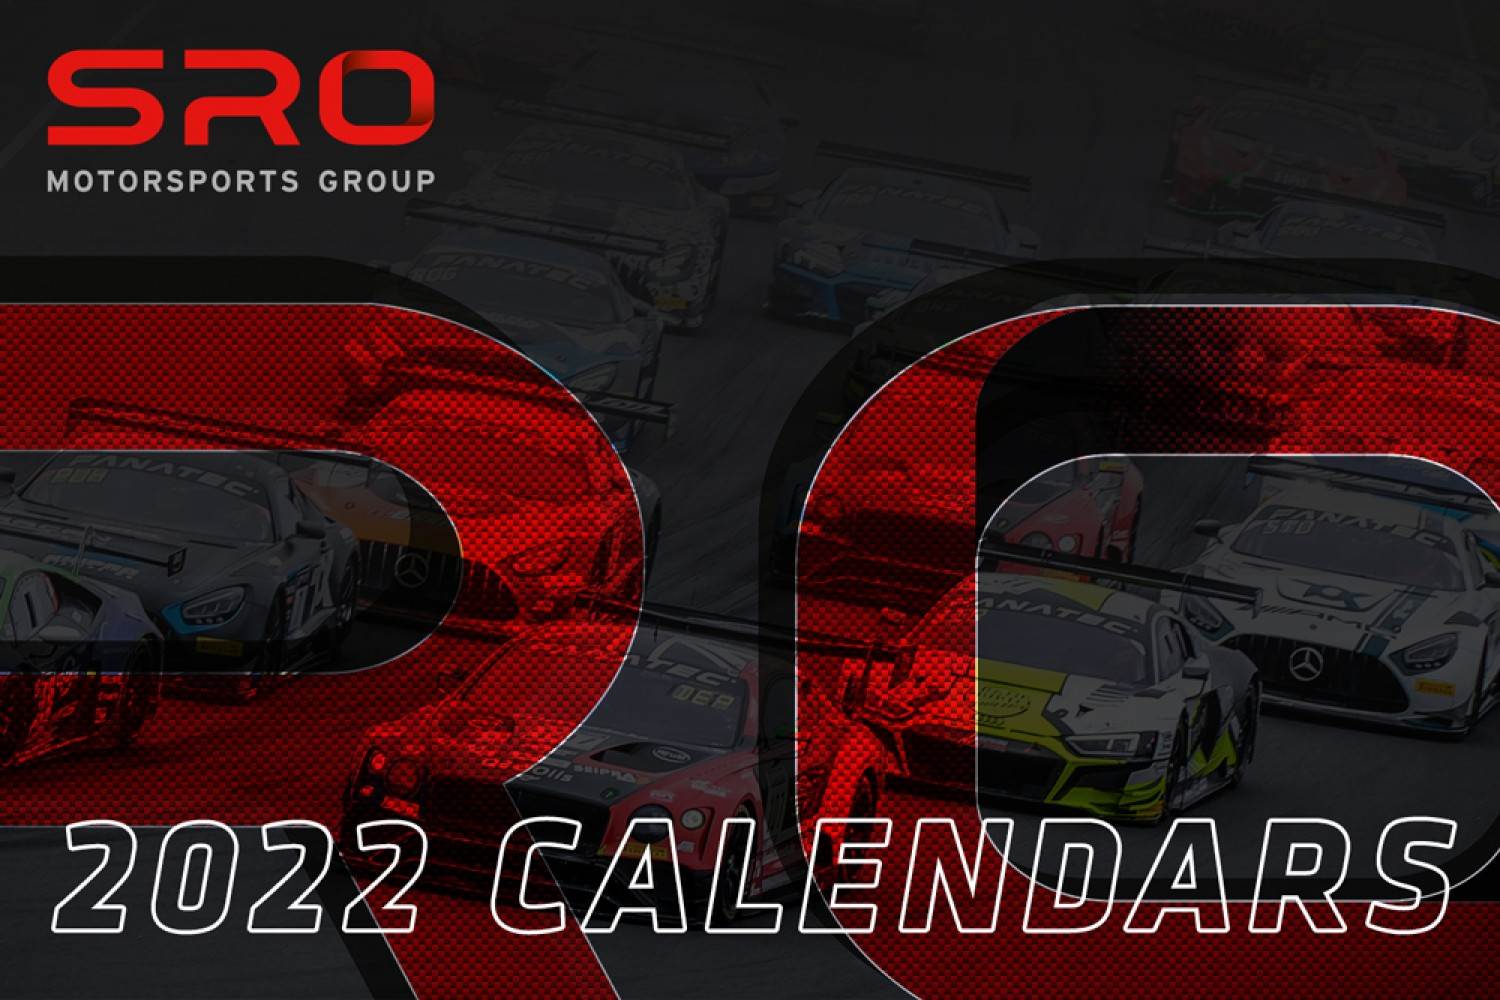 European and American series among first set of 2022 calendars confirmed by SRO Motorsports Group